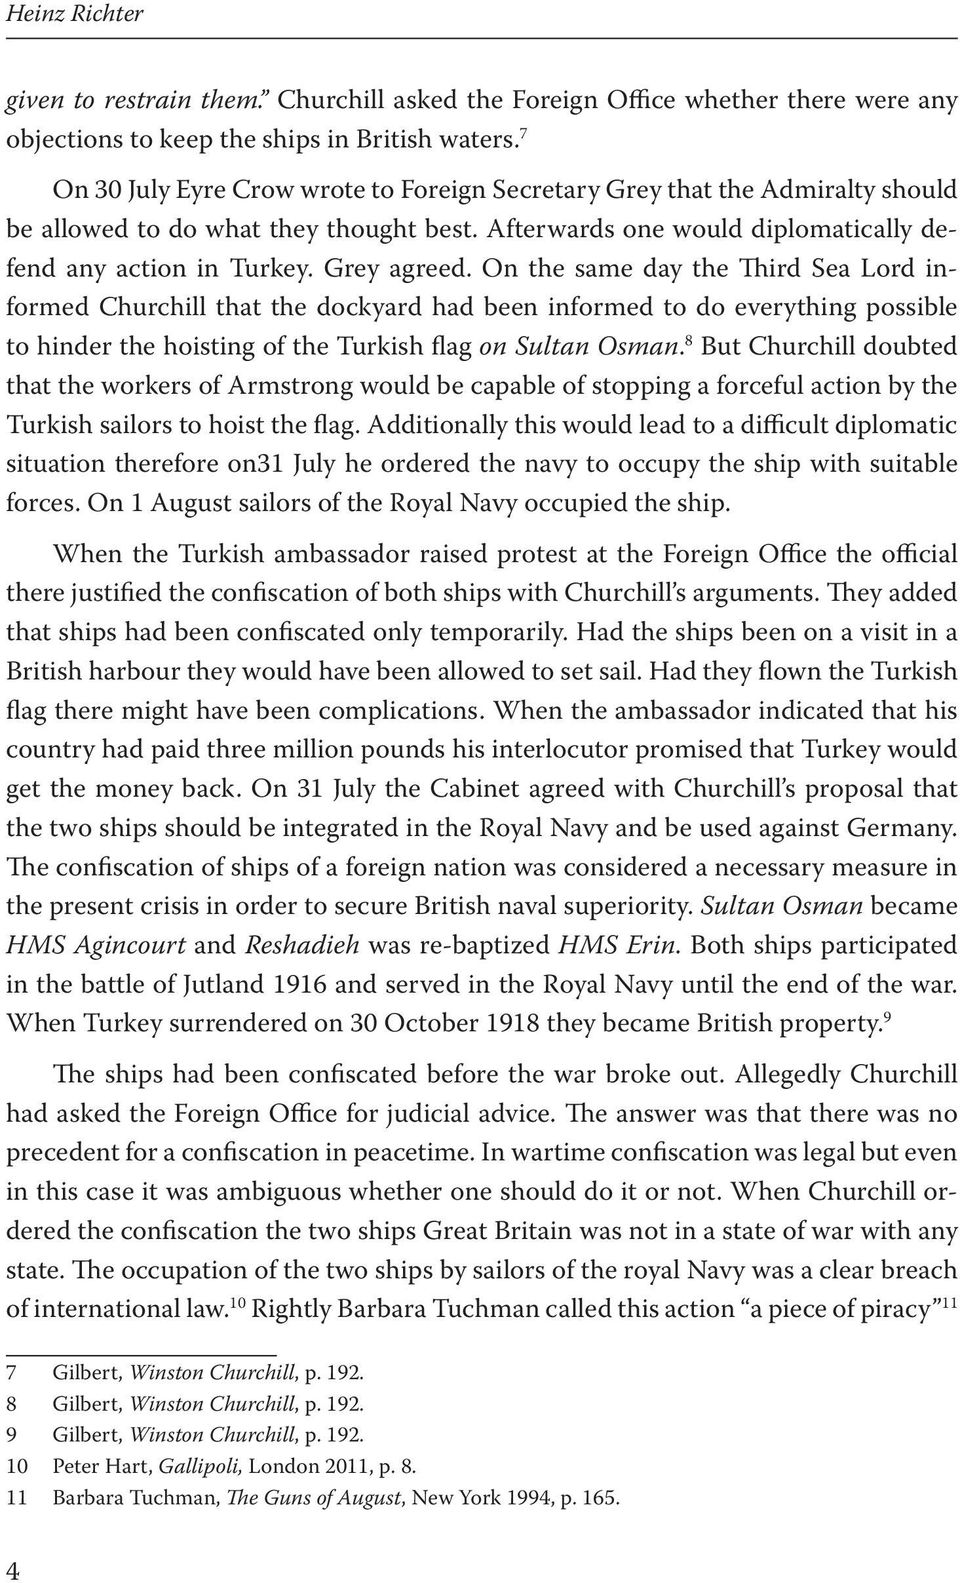 On the same day the Third Sea Lord informed Churchill that the dockyard had been informed to do everything possible to hinder the hoisting of the Turkish flag on Sultan Osman.